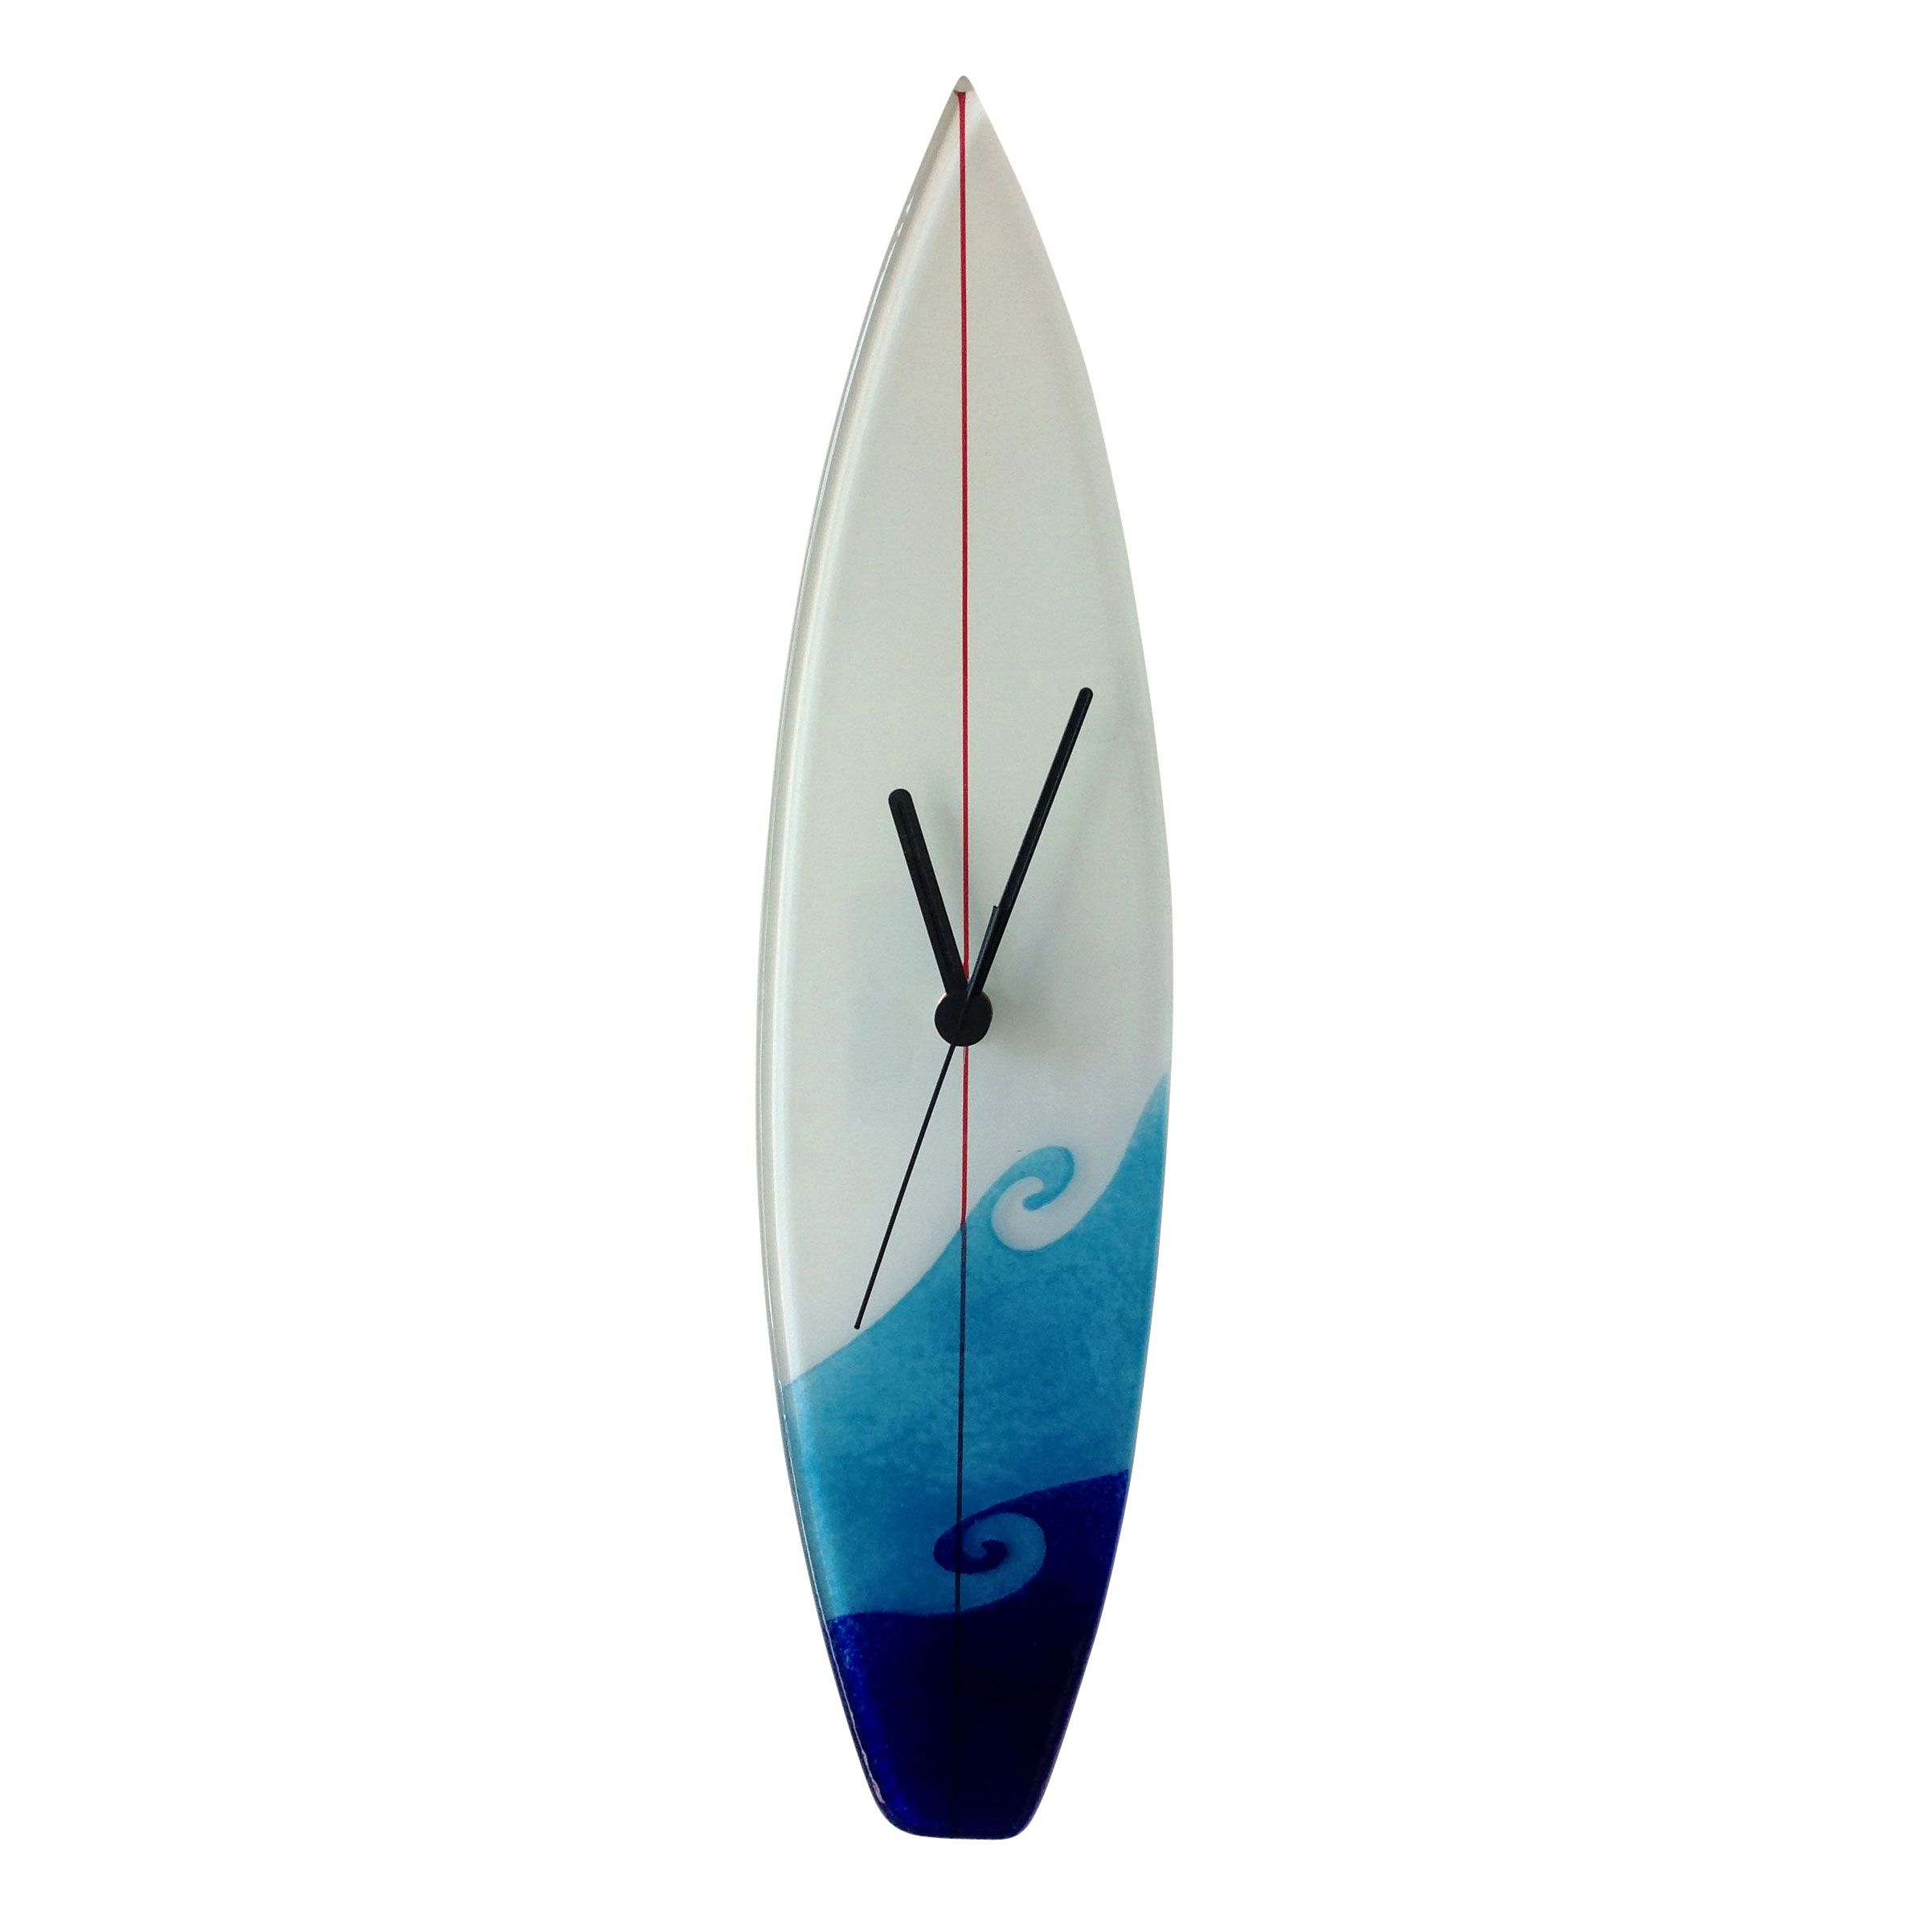 MIXED WAVES SURFBOARD STYLE CLOCK